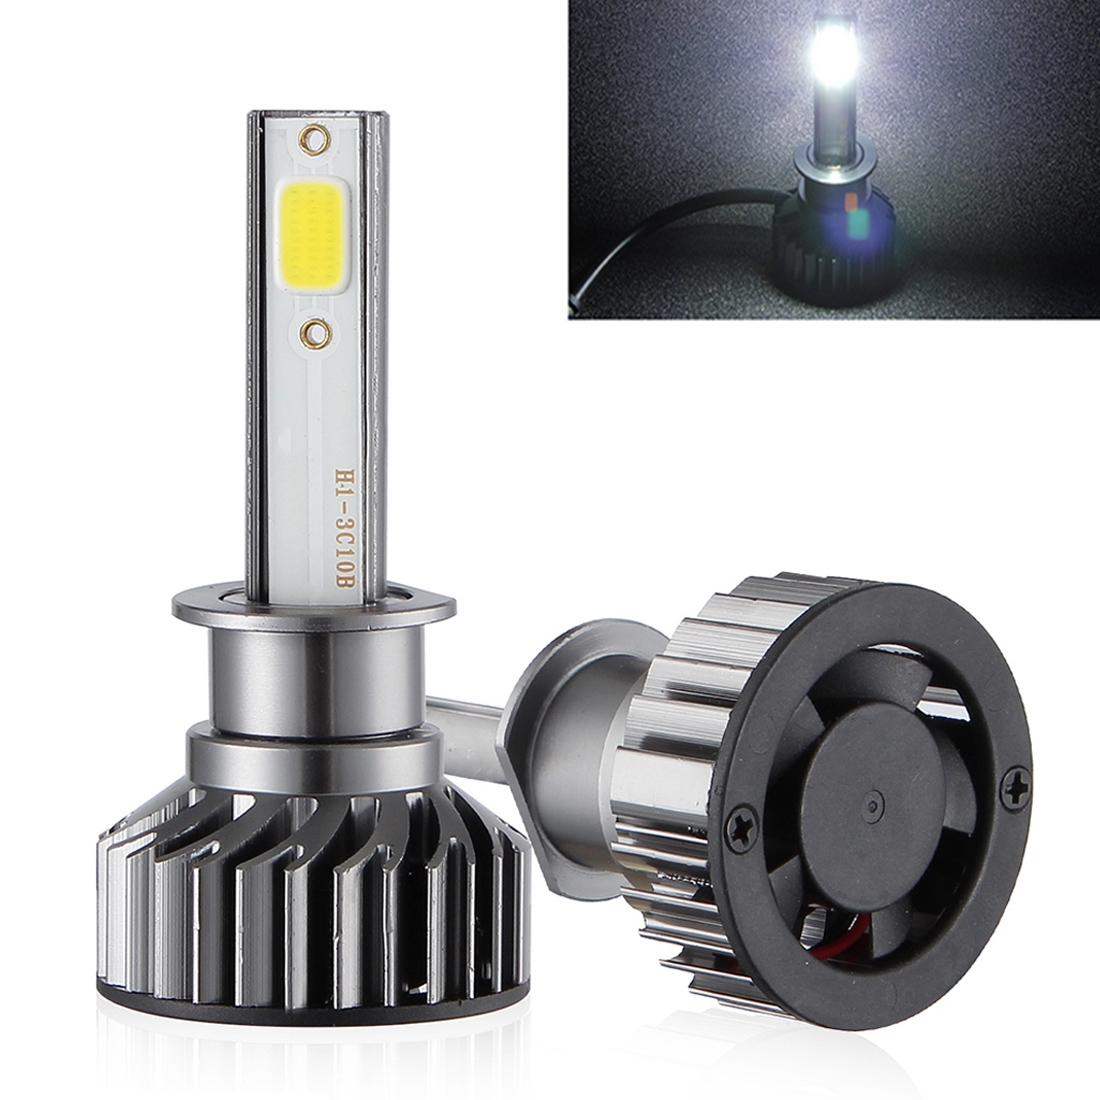 2 PCS EV8 H1 DC 9-32V 36W 3000LM 6000K IP67 DOB LED Car Headlight Lamps, with Mini LED Driver and Cable (White Light)